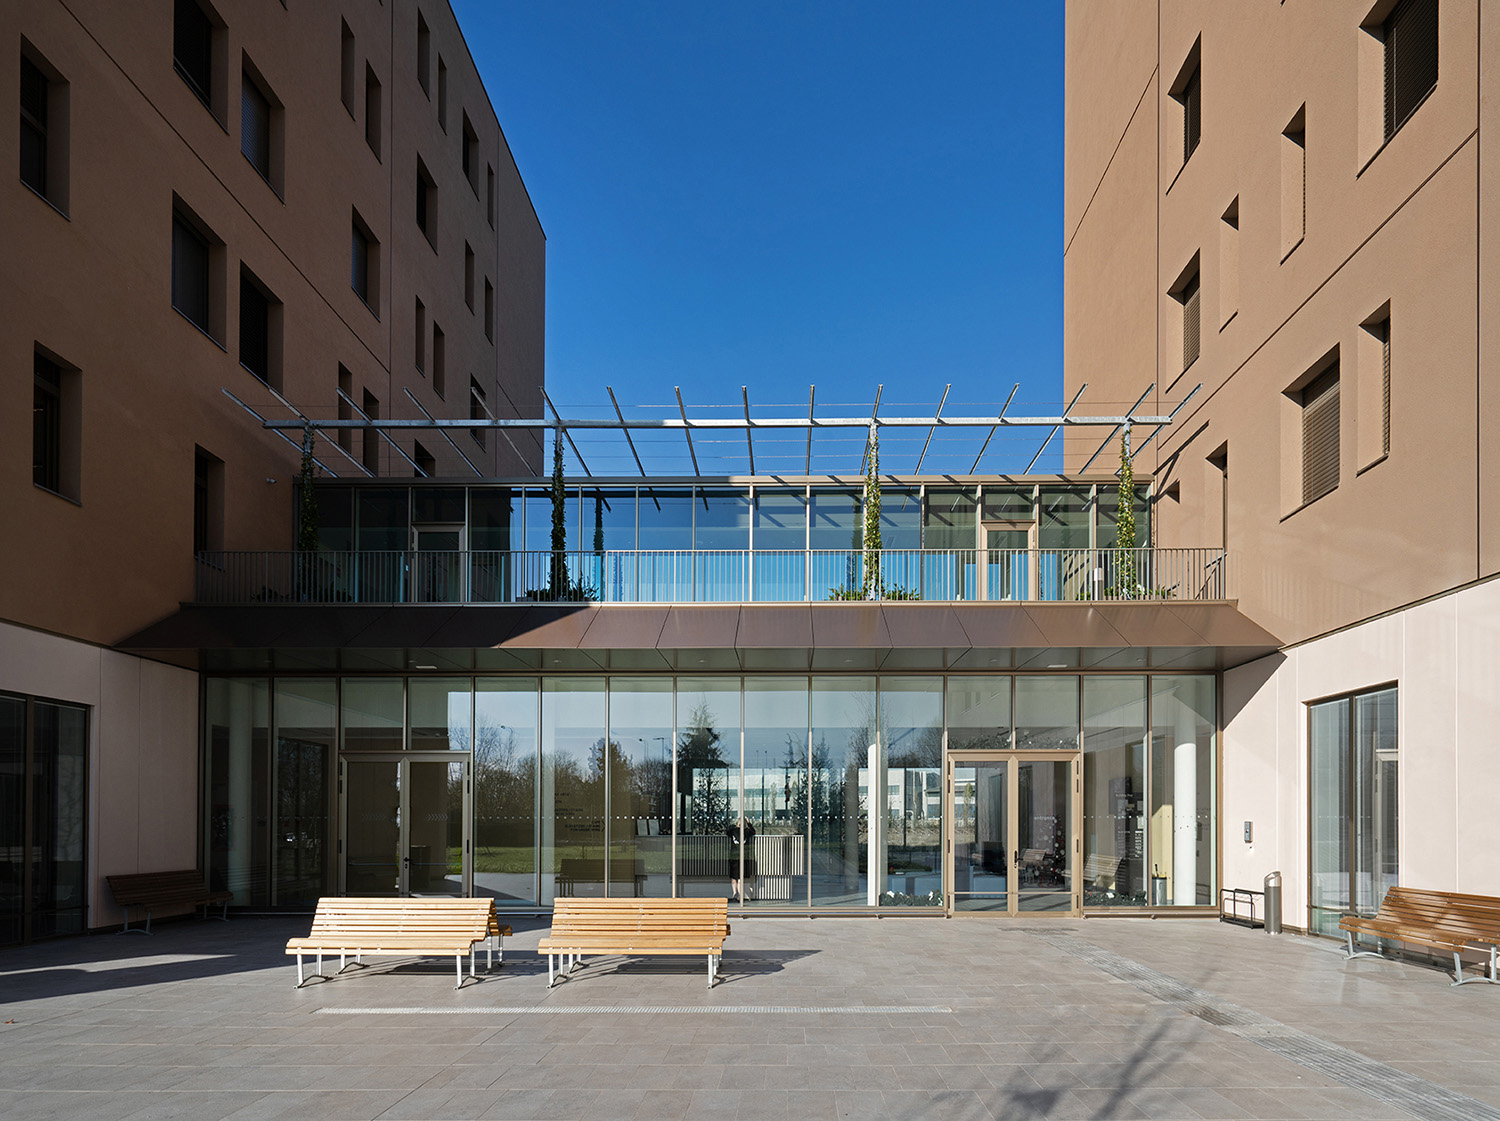 The entrance to the student house building Andrea Martiradonna